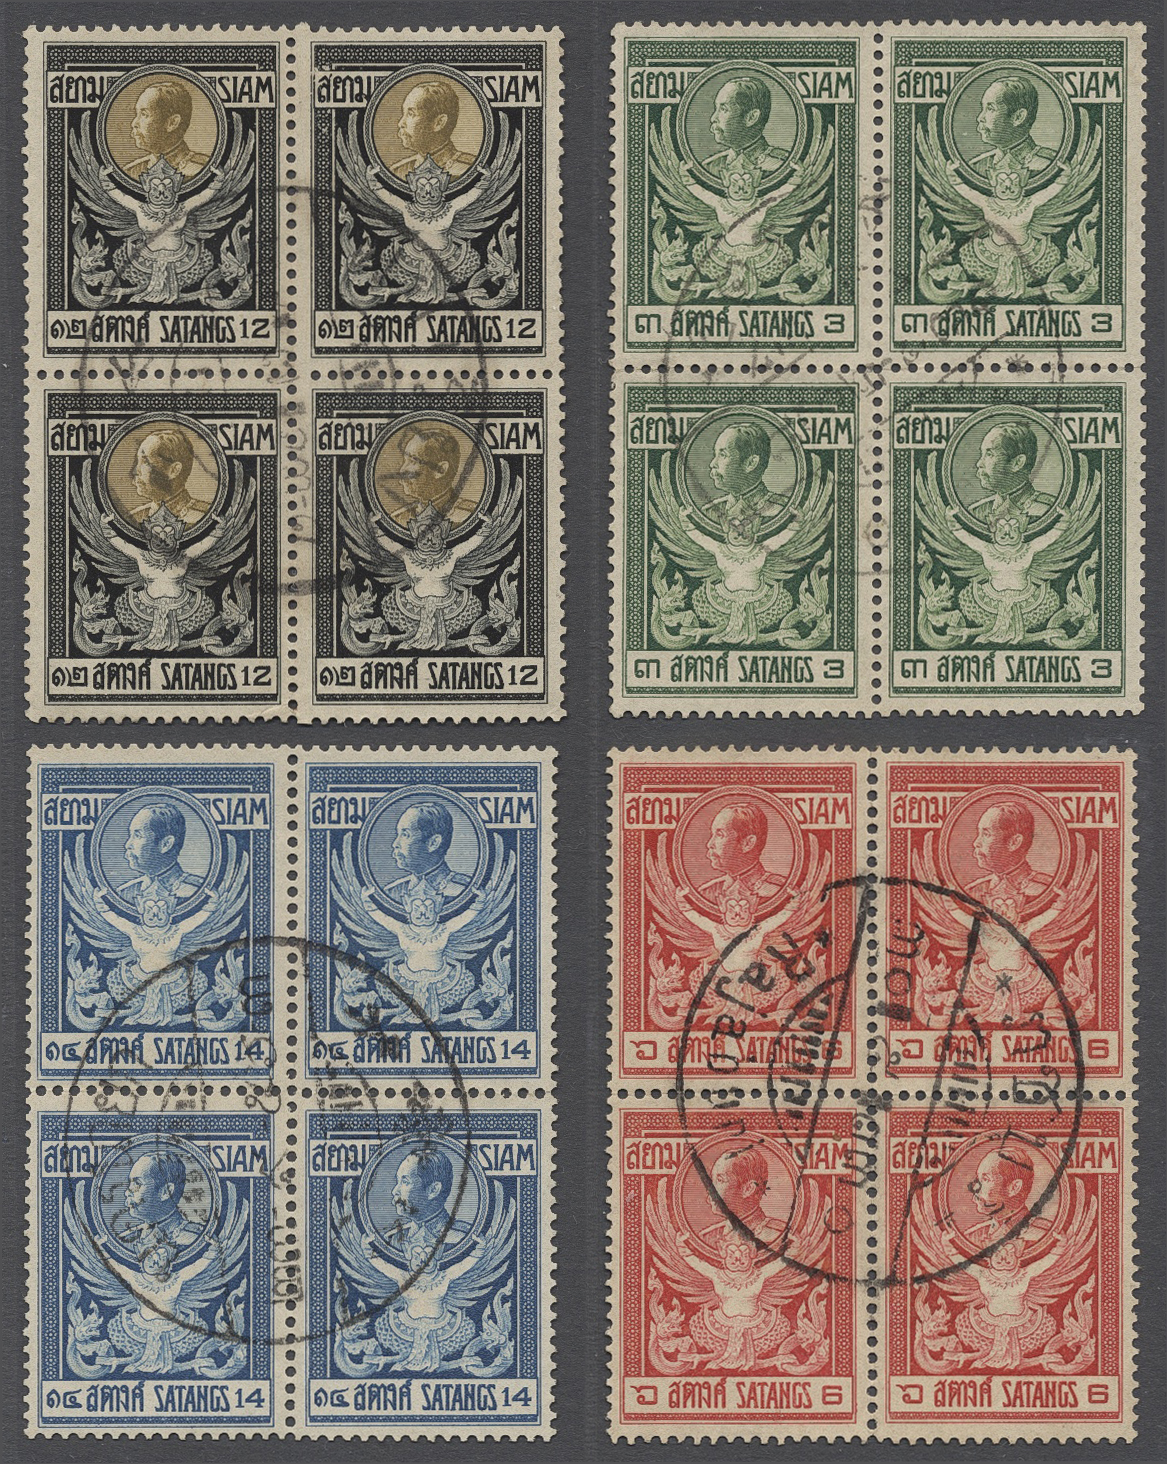 Lot 34762 - thailand  -  Auktionshaus Christoph Gärtner GmbH & Co. KG Sale #44 Collections Germany